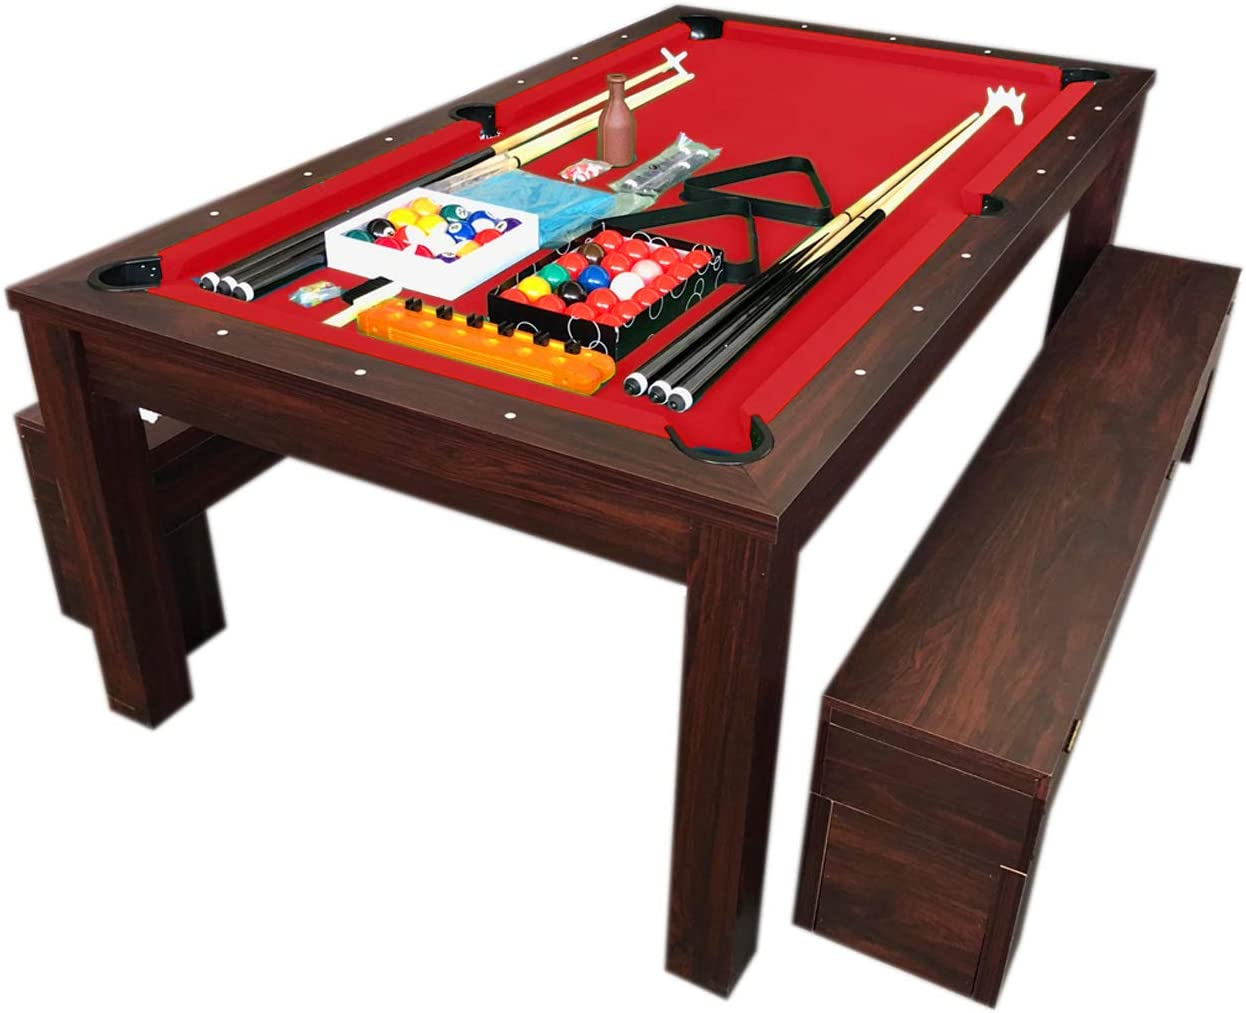 simba usa 7Ft Pool Table Billiard with a High Max 52% OFF quality Become Dinner Red